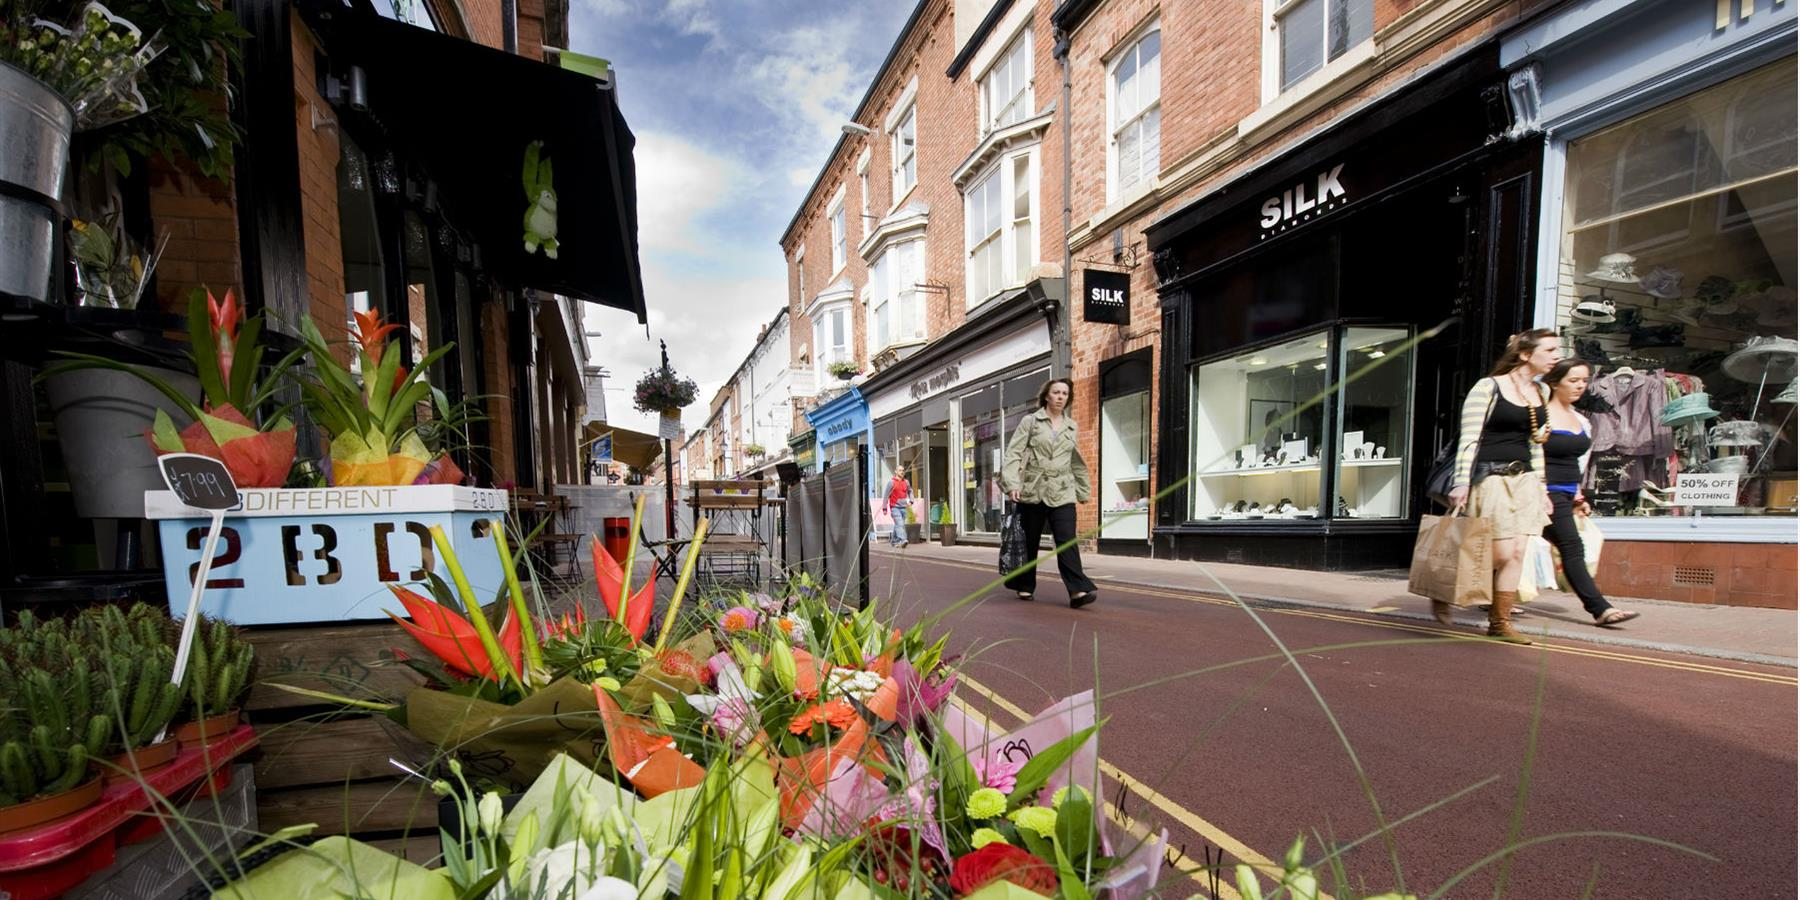 Shops and Markets, Shopping in Leicester